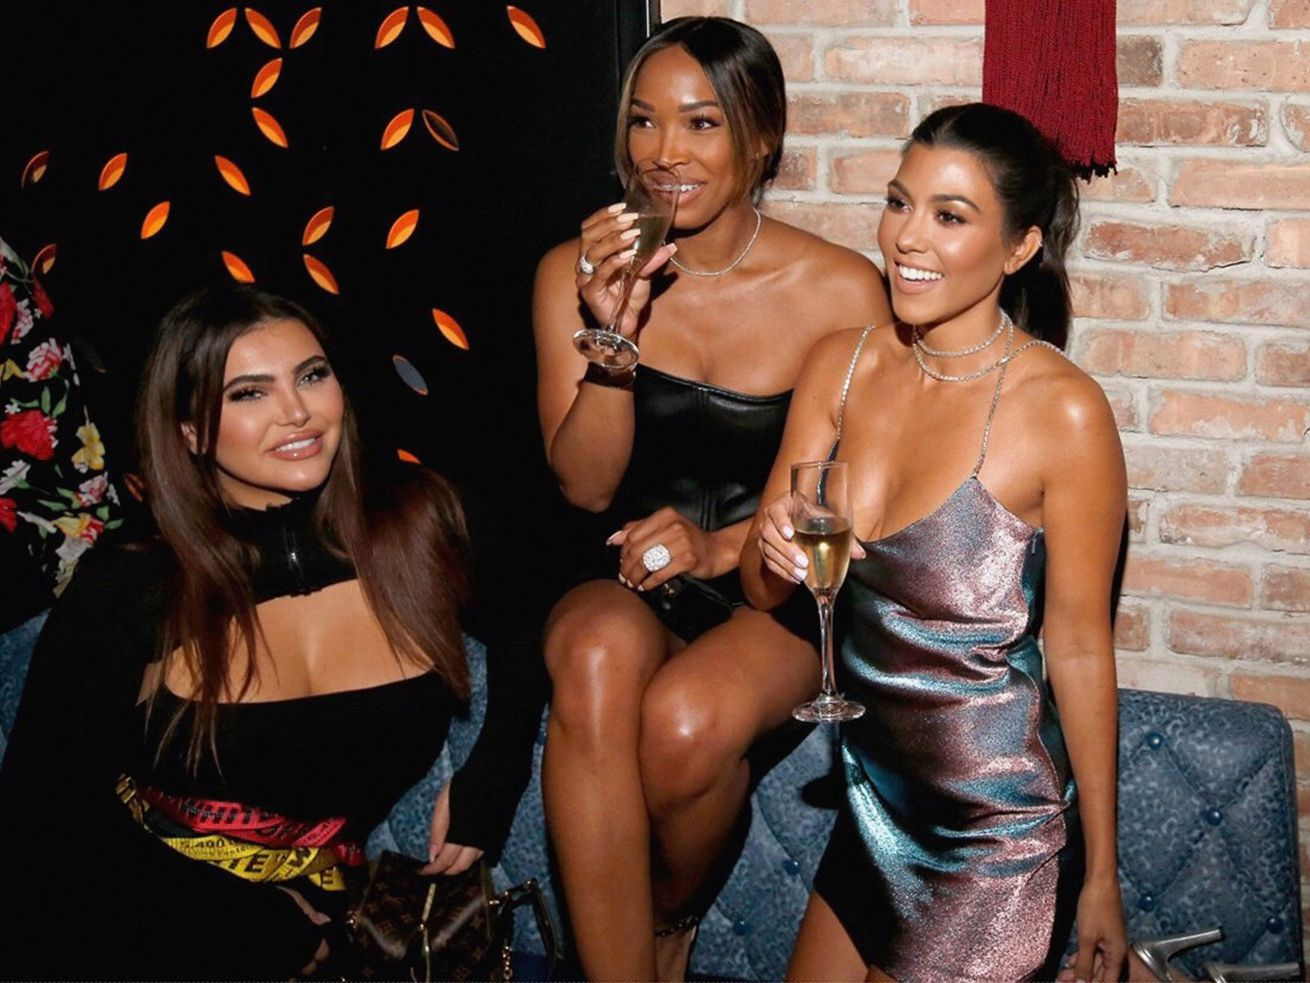 Hrush Achemyan, Malika Haqq and Kourtney Kardashian at TAO Chicago